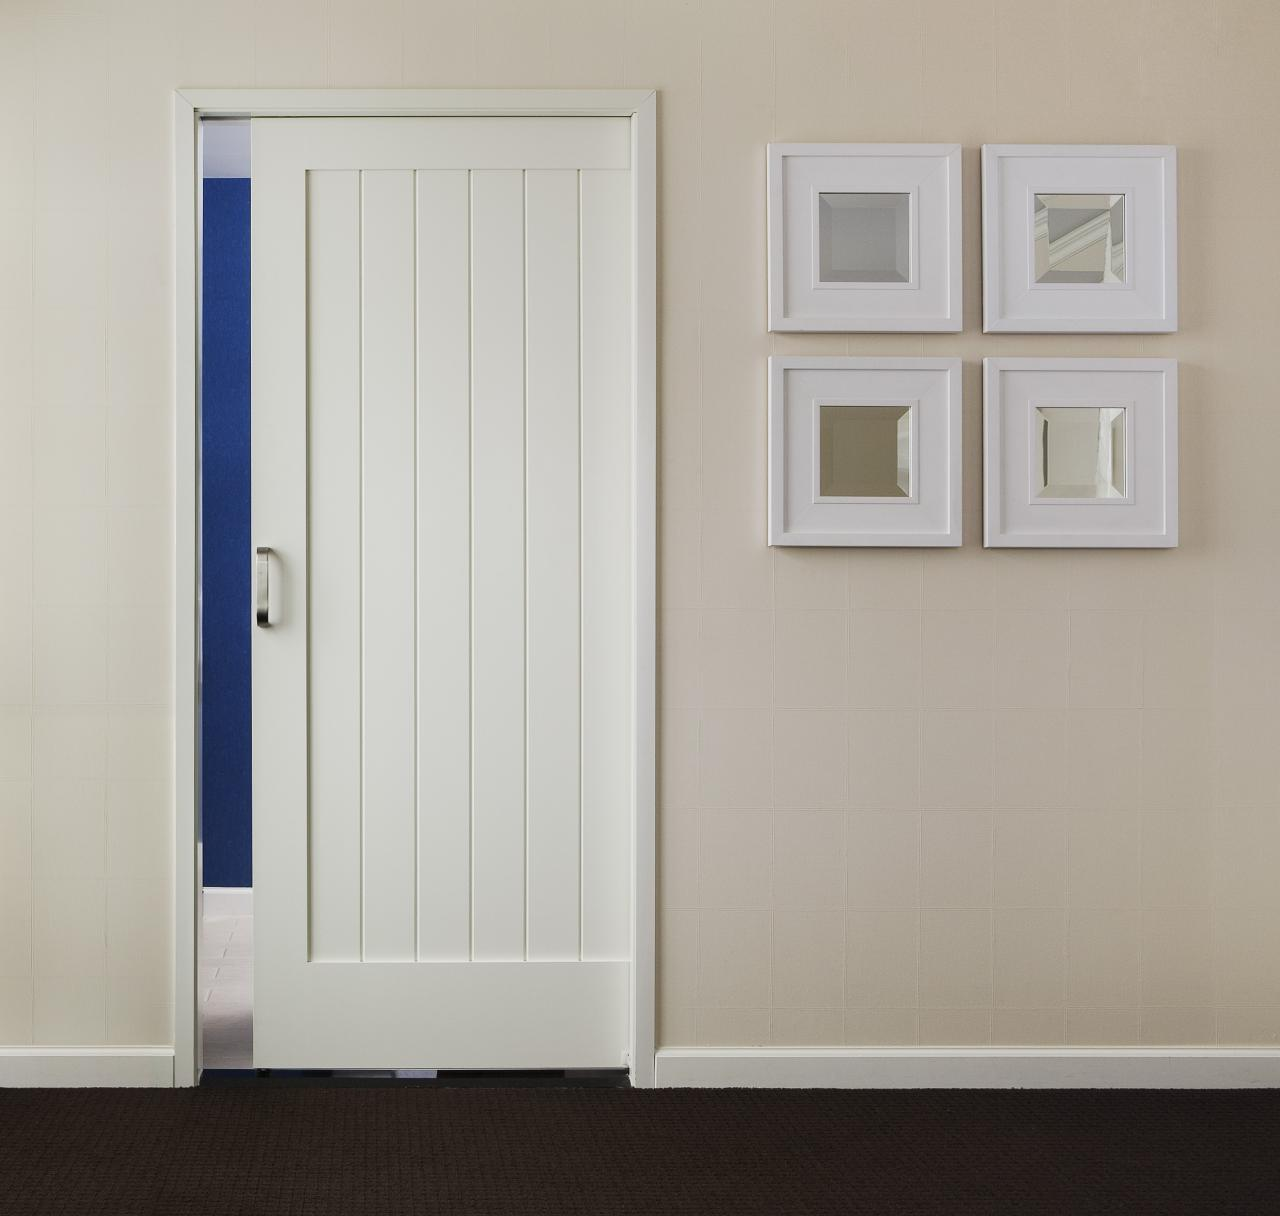 Trustile paint grade mdf interior doors in chicago at glenview mirror slider mdf interior door trustile v grove series eventelaan Images